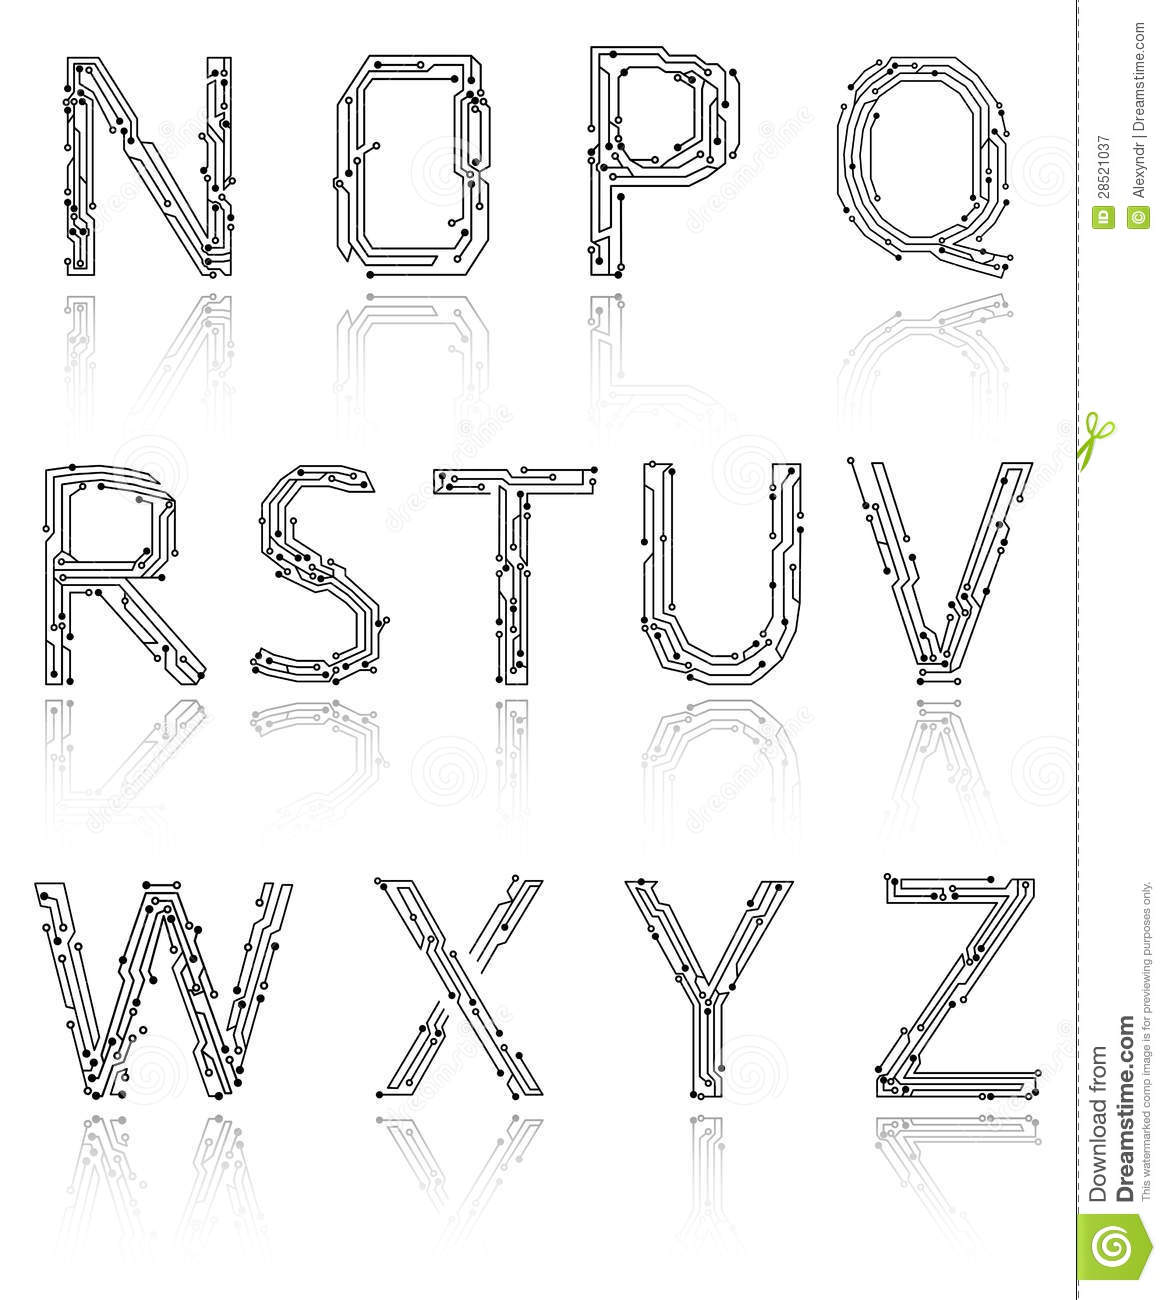 Alphabet Of Printed Circuit Boards Royalty Free Stock